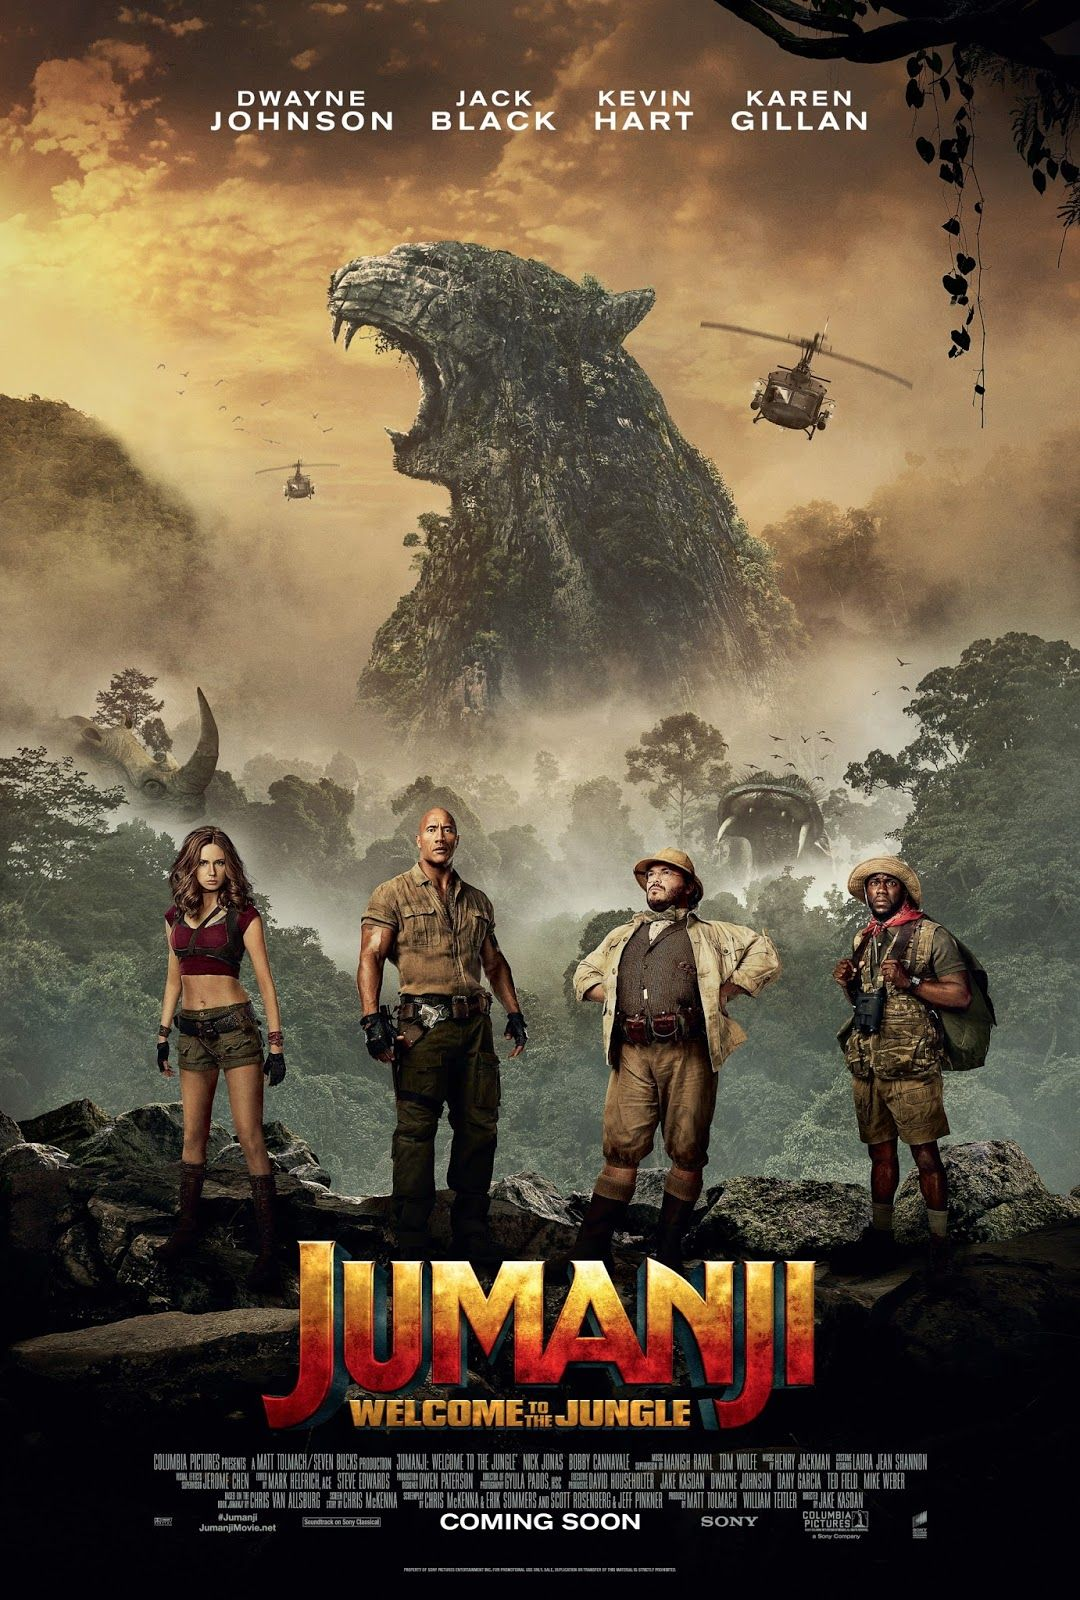 Jumanji: Welcome to the Jungle (2017) - I want to stay with